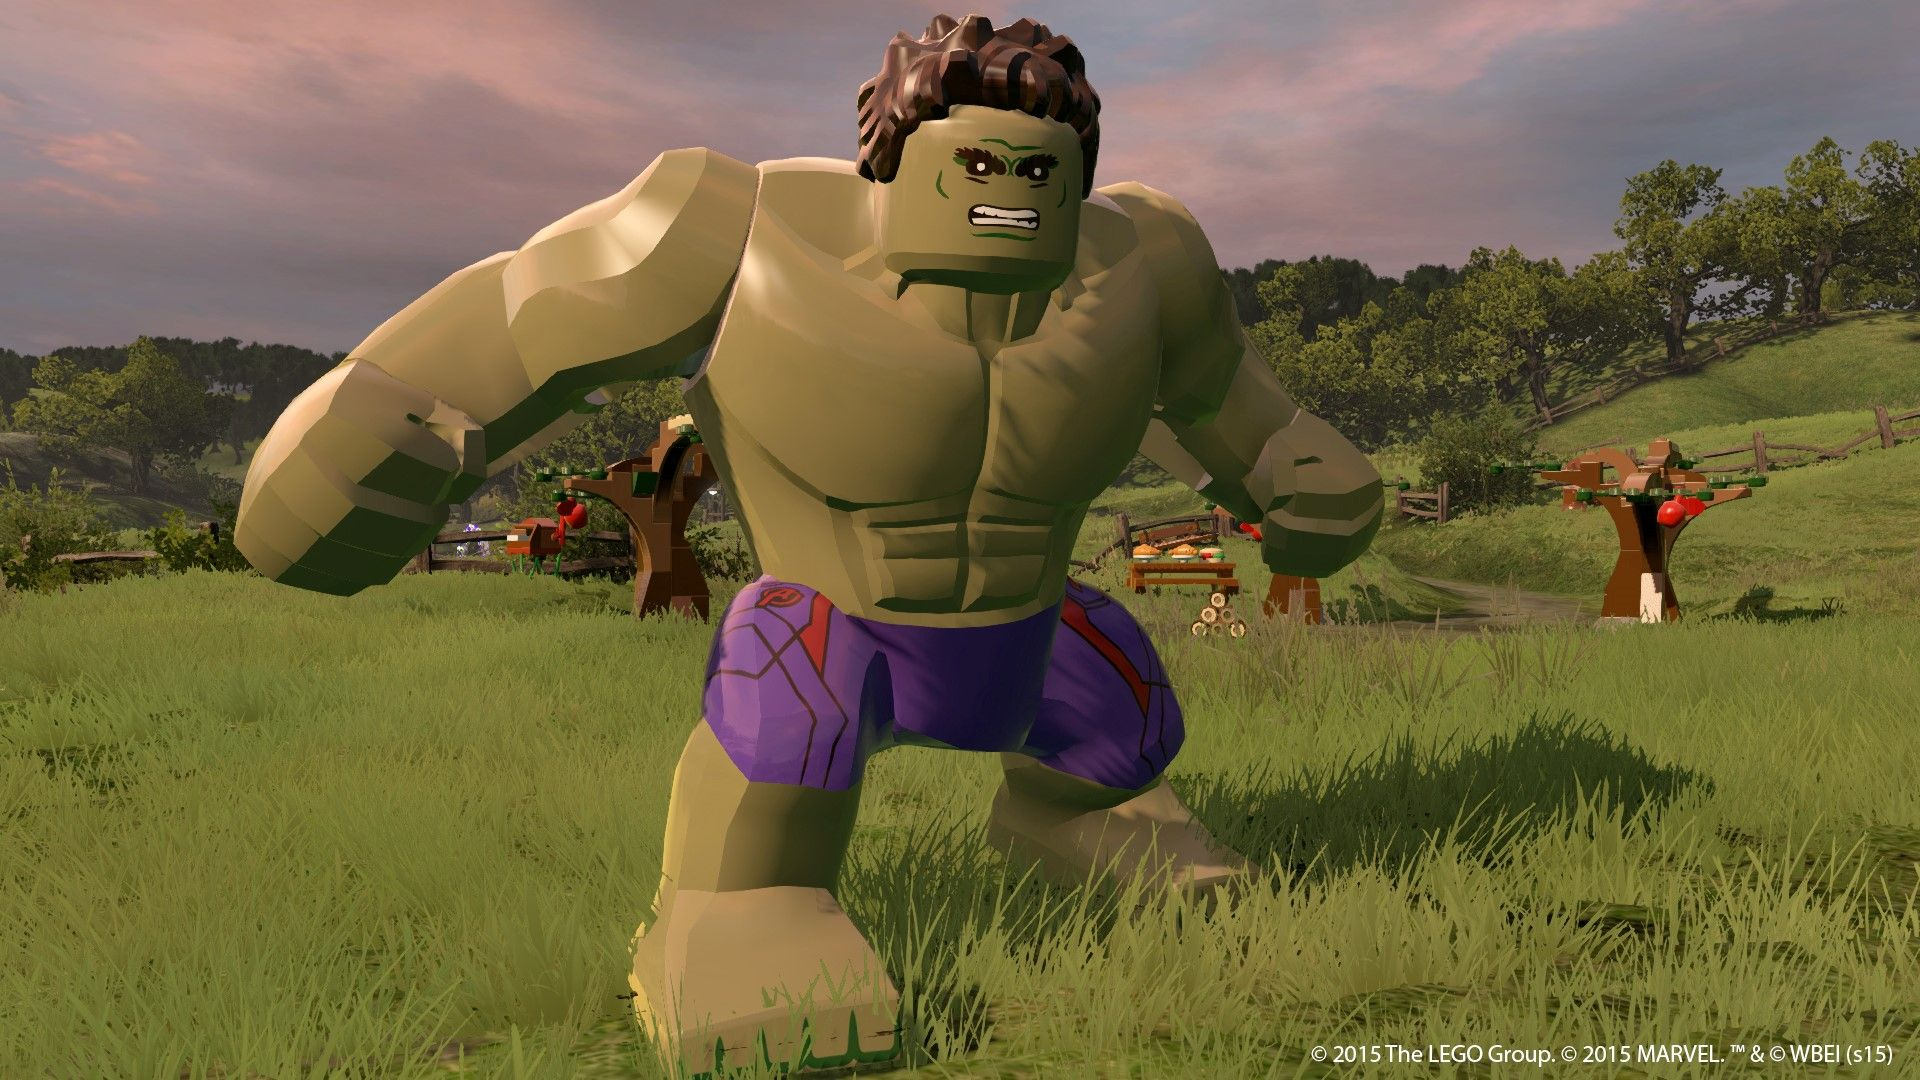 LEGO Marvel's Avengers' ties to the cinematic universe make it less imaginative than its comic book predecessor, but excellent superhero gameplay makes up for it. Description from gamingtrend.com. I searched for this on bing.com/images